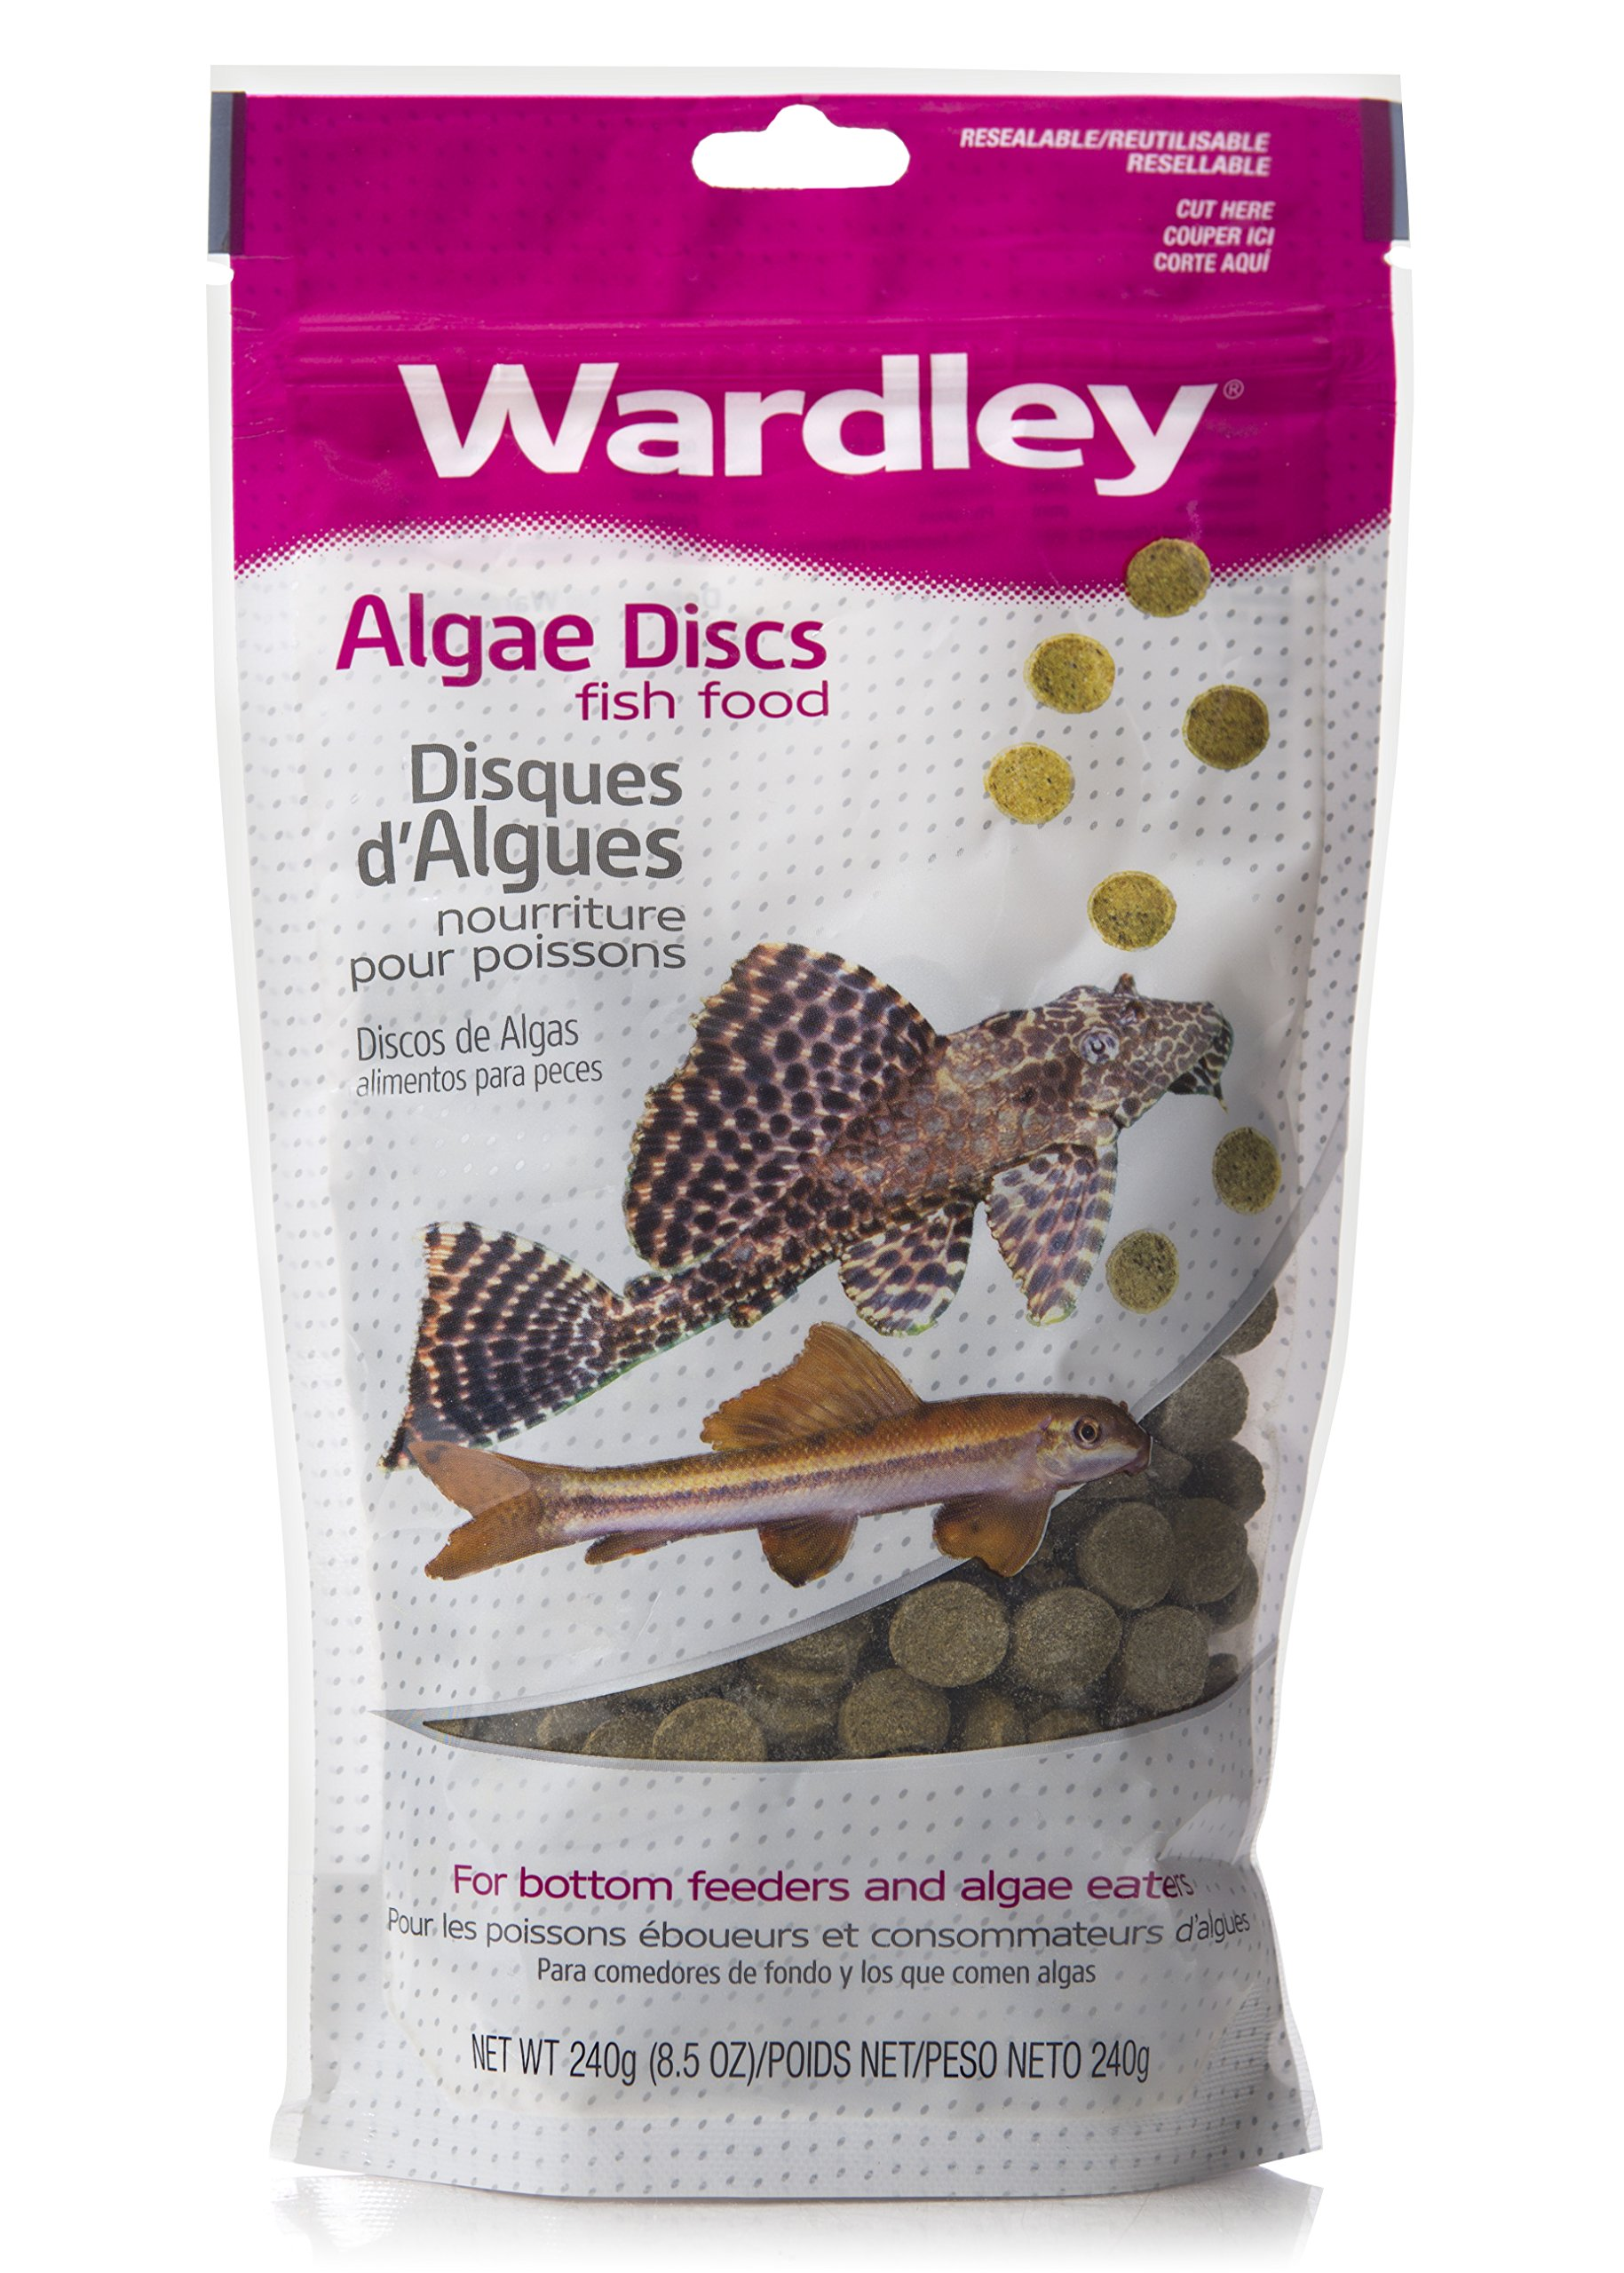 HARTZ Wardley Algae Discs Fish Food for Bottom and Algae Eaters - 8.5oz by HARTZ (Image #1)